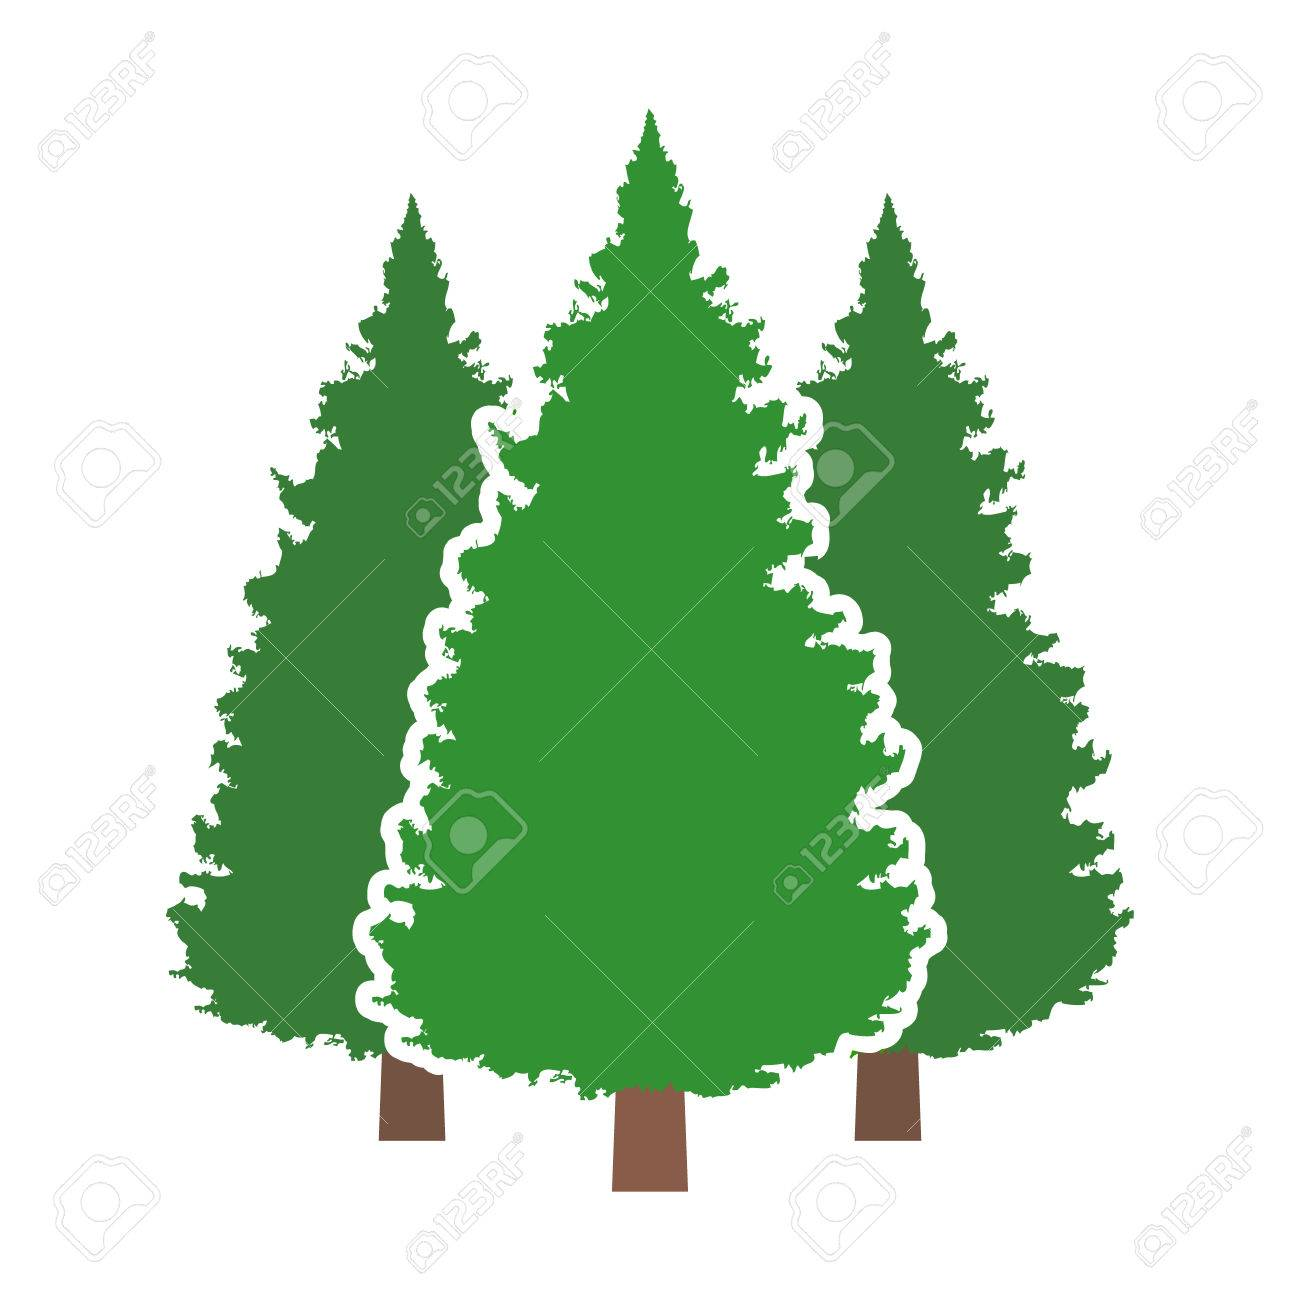 Three Conifer Pine Trees In A Forest Or Park Flat Vector Color ...